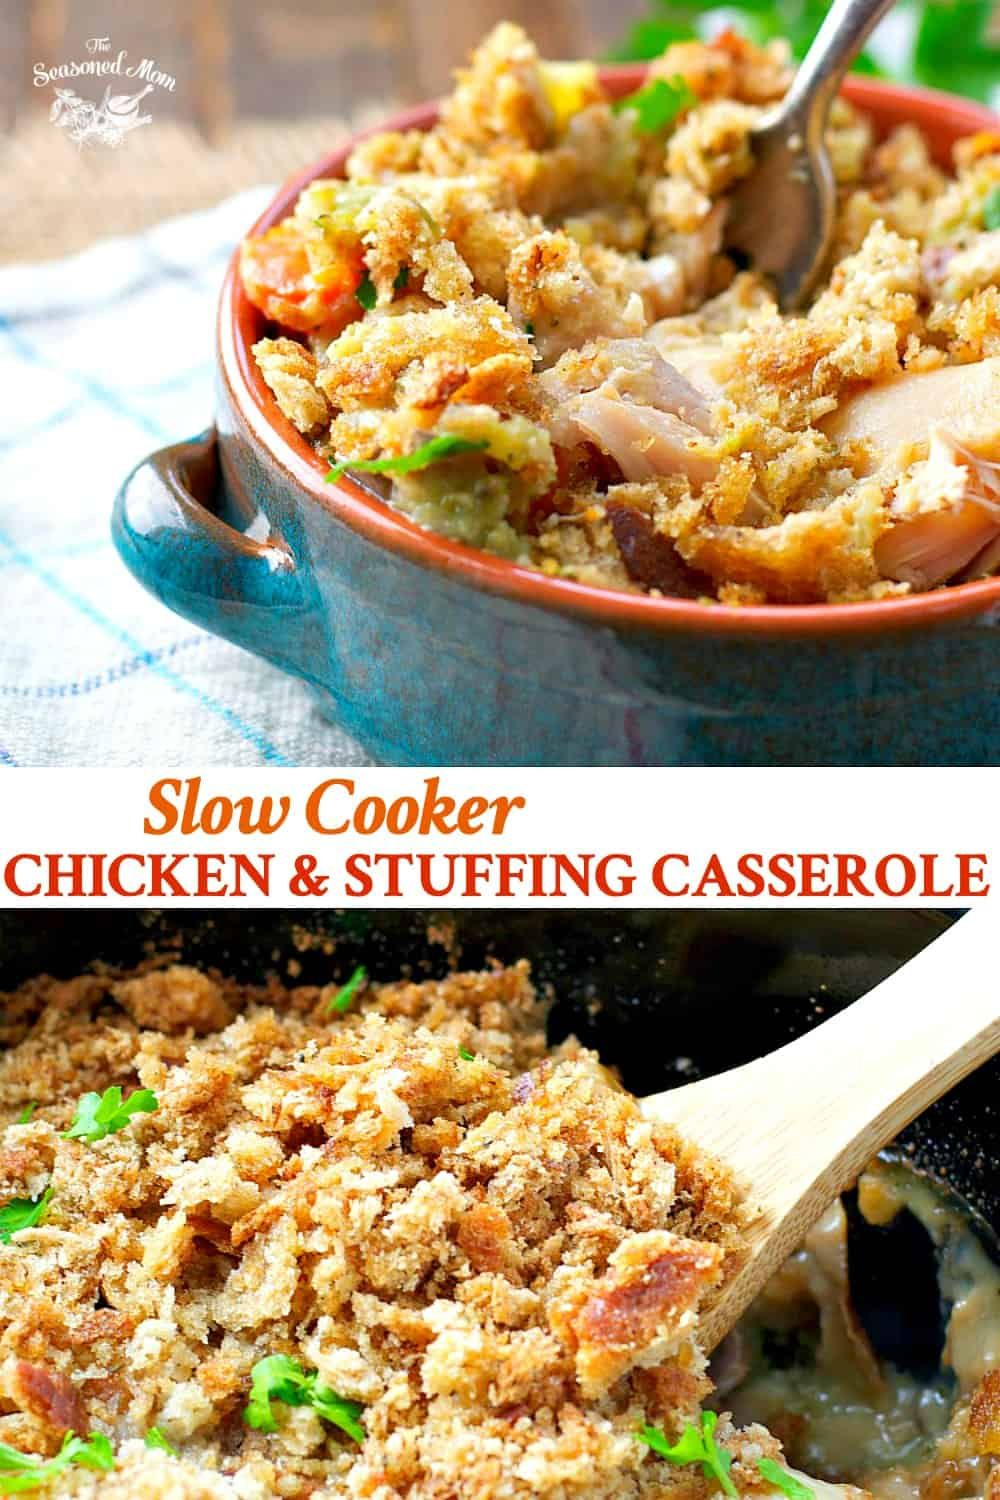 Slow Cooker Chicken and Stuffing Casserole #crockpotmeals